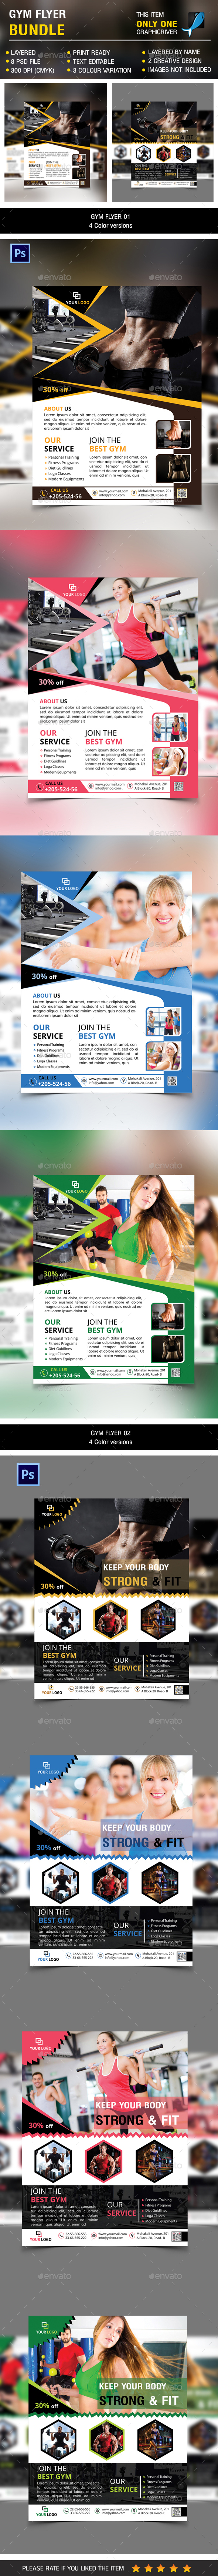 Gym flyer Bundle